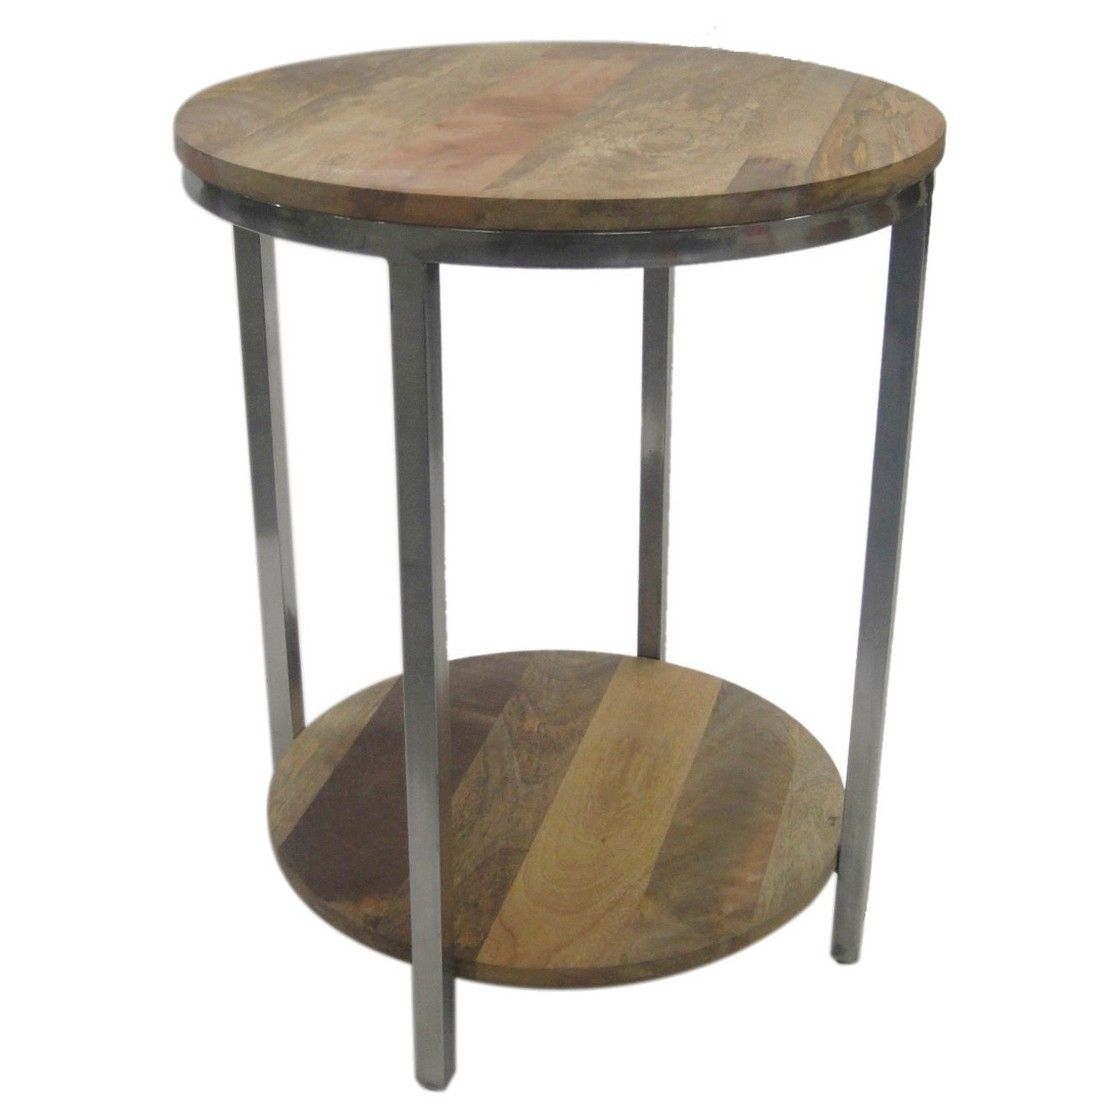 Berwyn End Table Metal And Wood Brown Threshold In 2021 End Tables Accent Table Table [ 1120 x 1120 Pixel ]